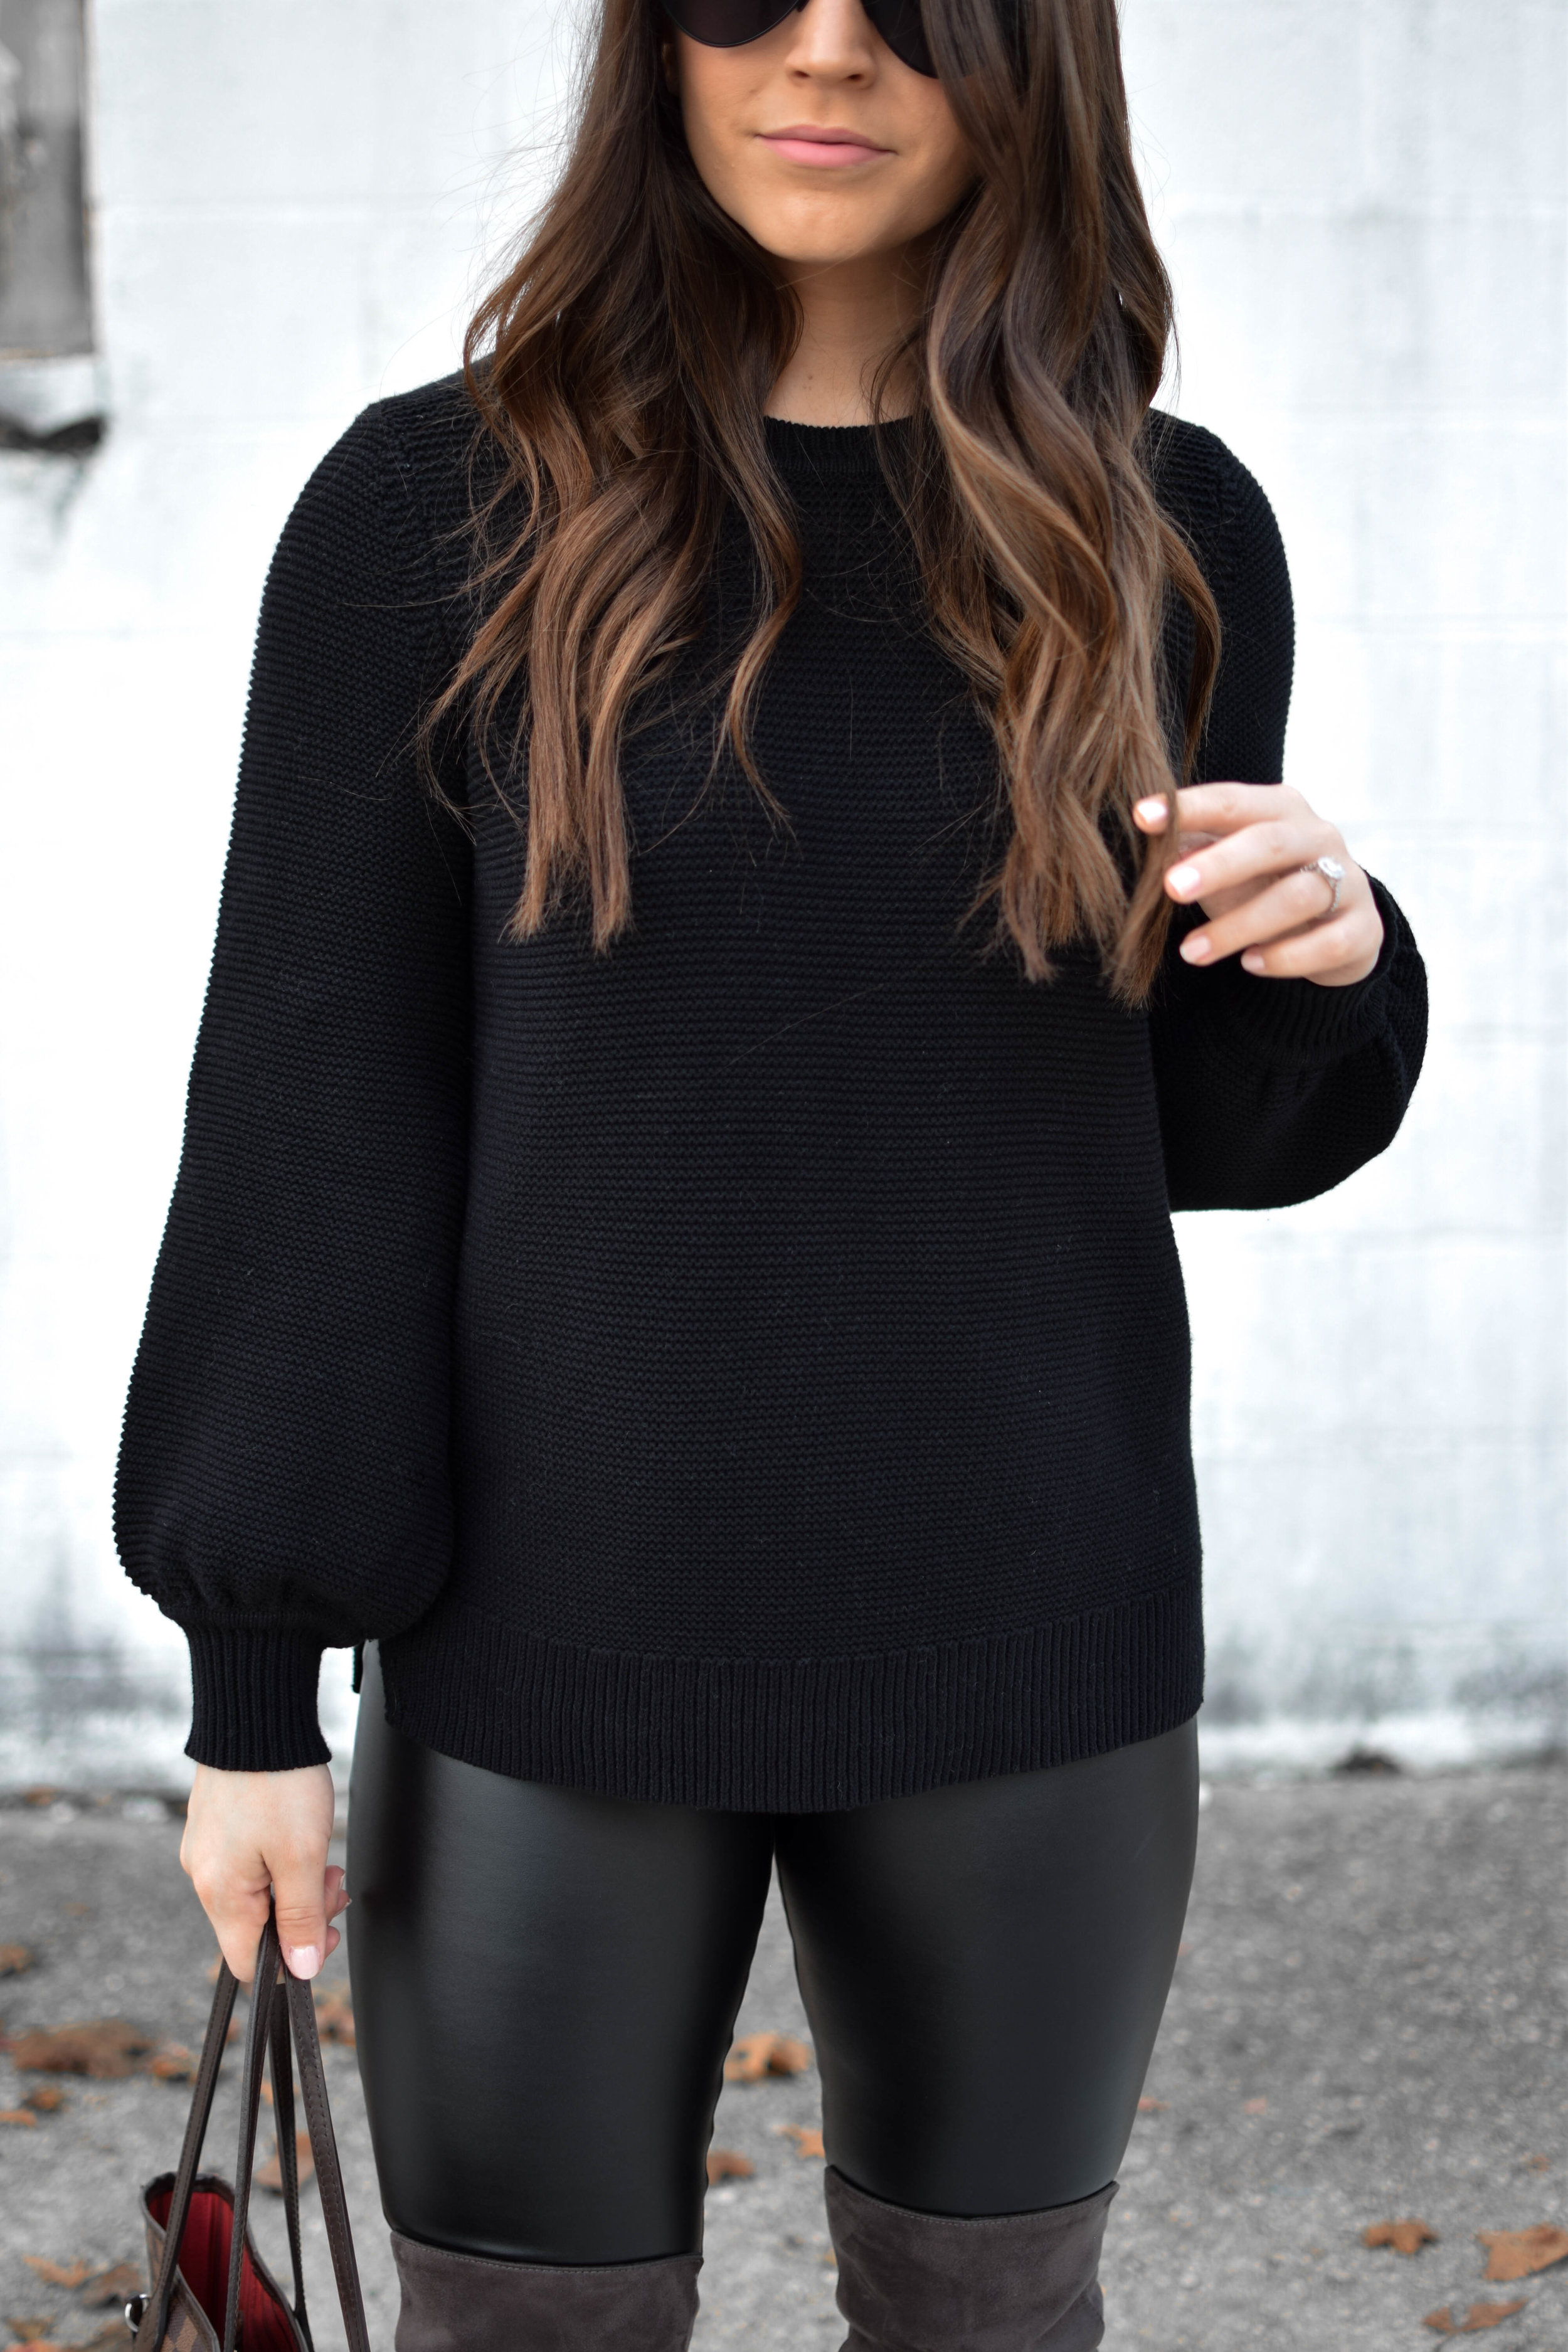 fall fashion / fall outfit idea / winter fashion / winter outfit idea / how to style faux leather leggings / how to style over the knee boots / all black outfit idea